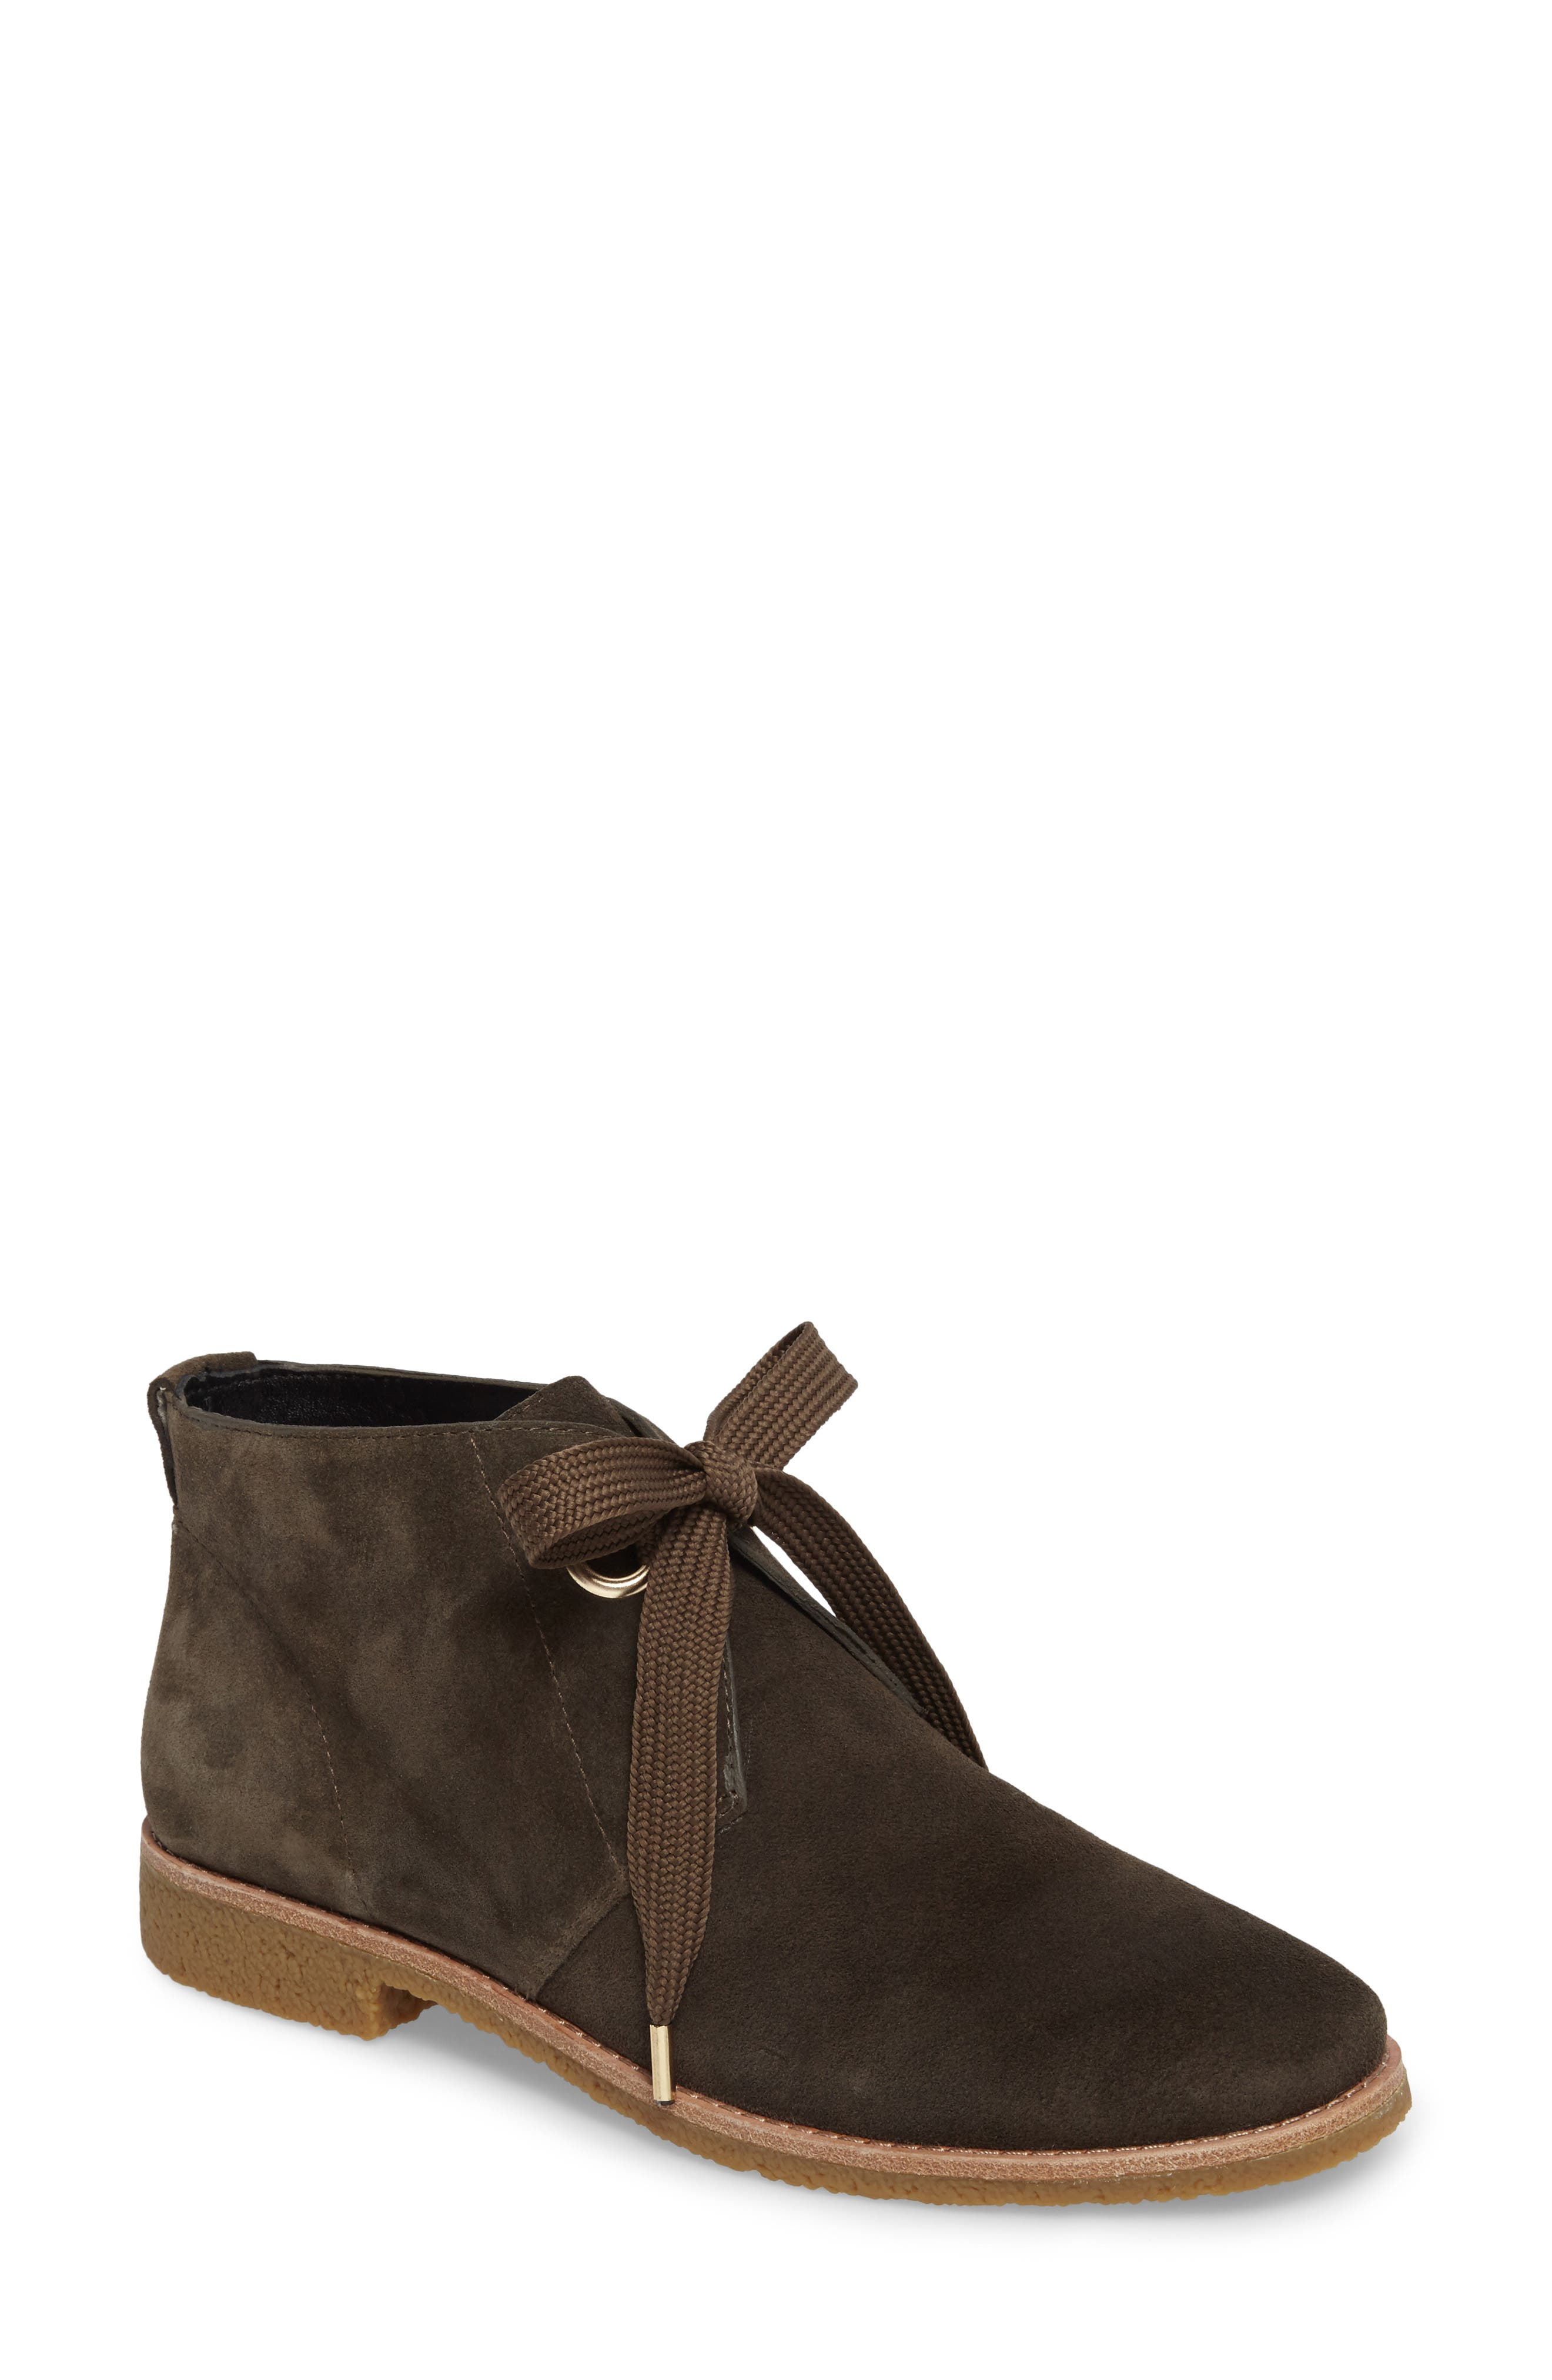 barrow chukka boot,                         Main,                         color, Olive Green Suede